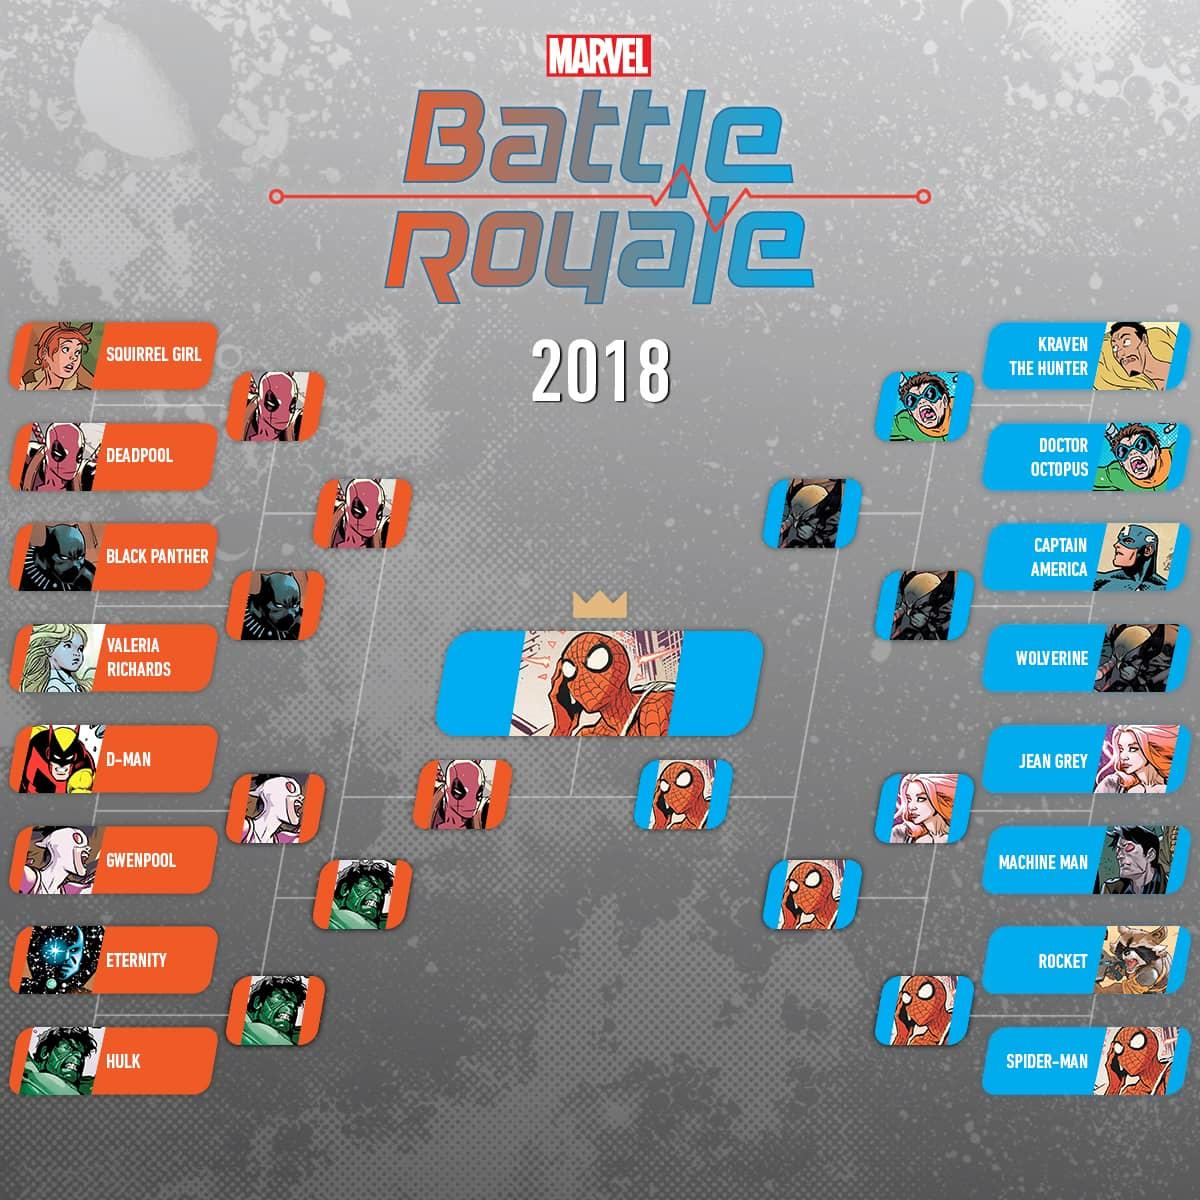 Marvel Battle Royale 2018 Spider-Man (Peter Parker) Wins Round 15 Battle Royale